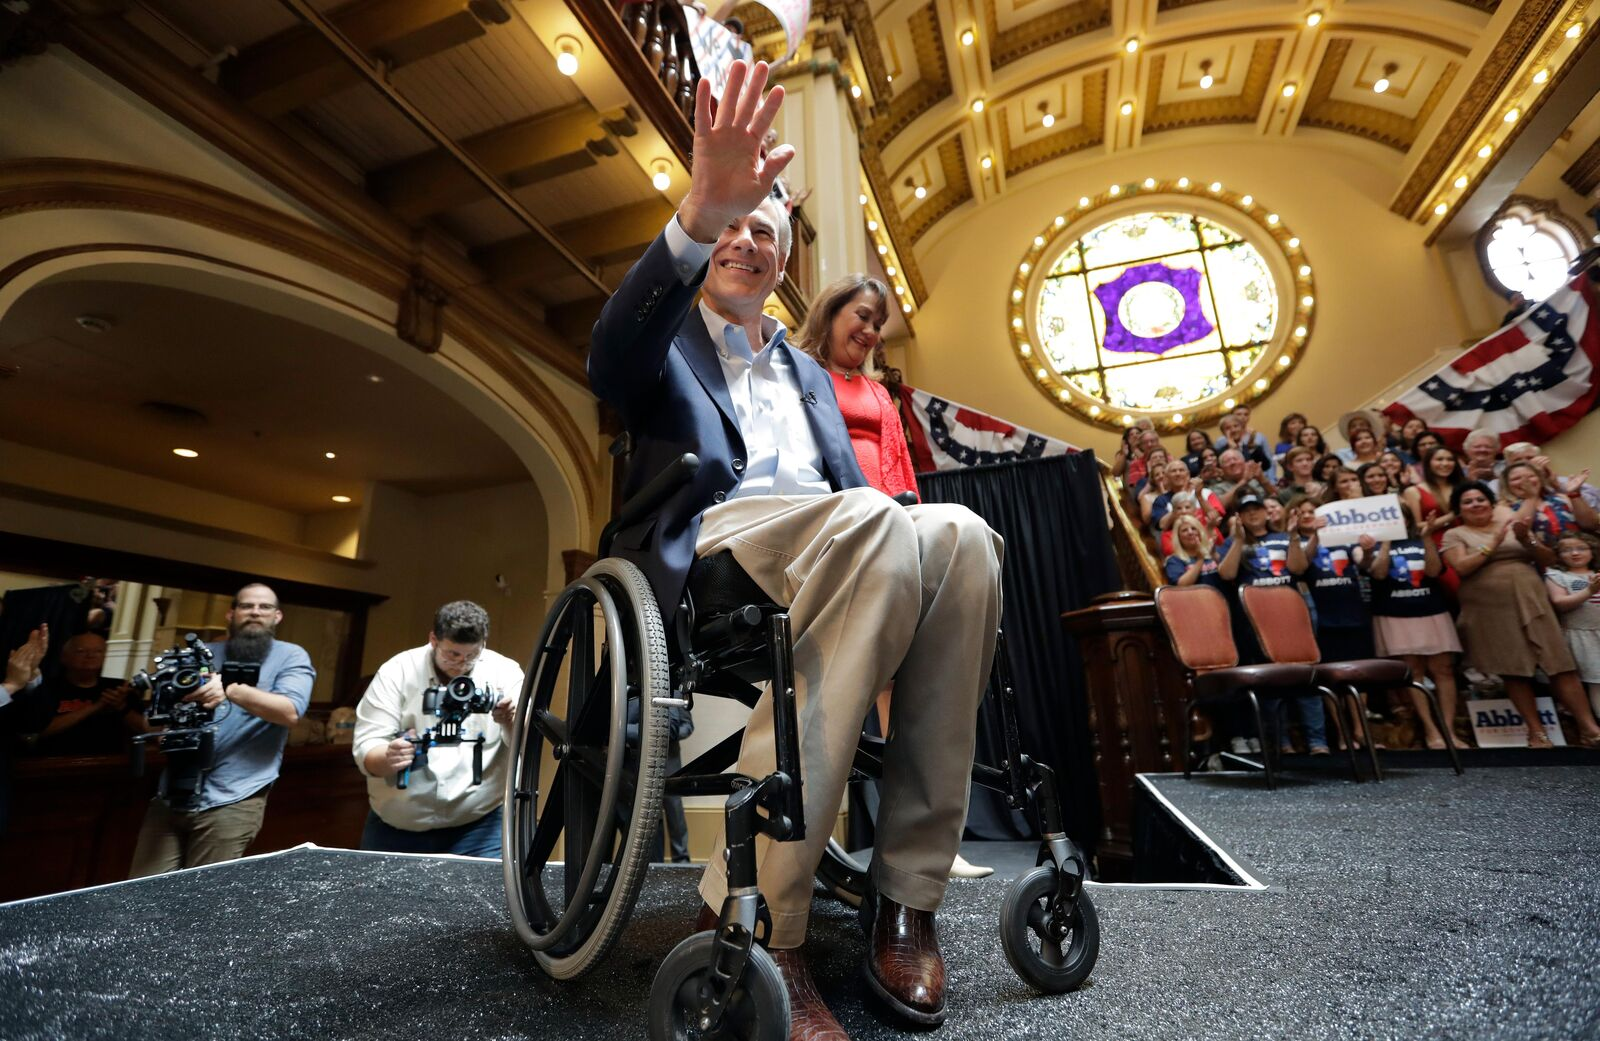 Texas Gov. Greg Abbott waves to supporters as he and his wife, Cecilia, arrive for an event where he announced his bid for re-election, Friday, July 14, 2017, in San Antonio. (AP Photo/Eric Gay)